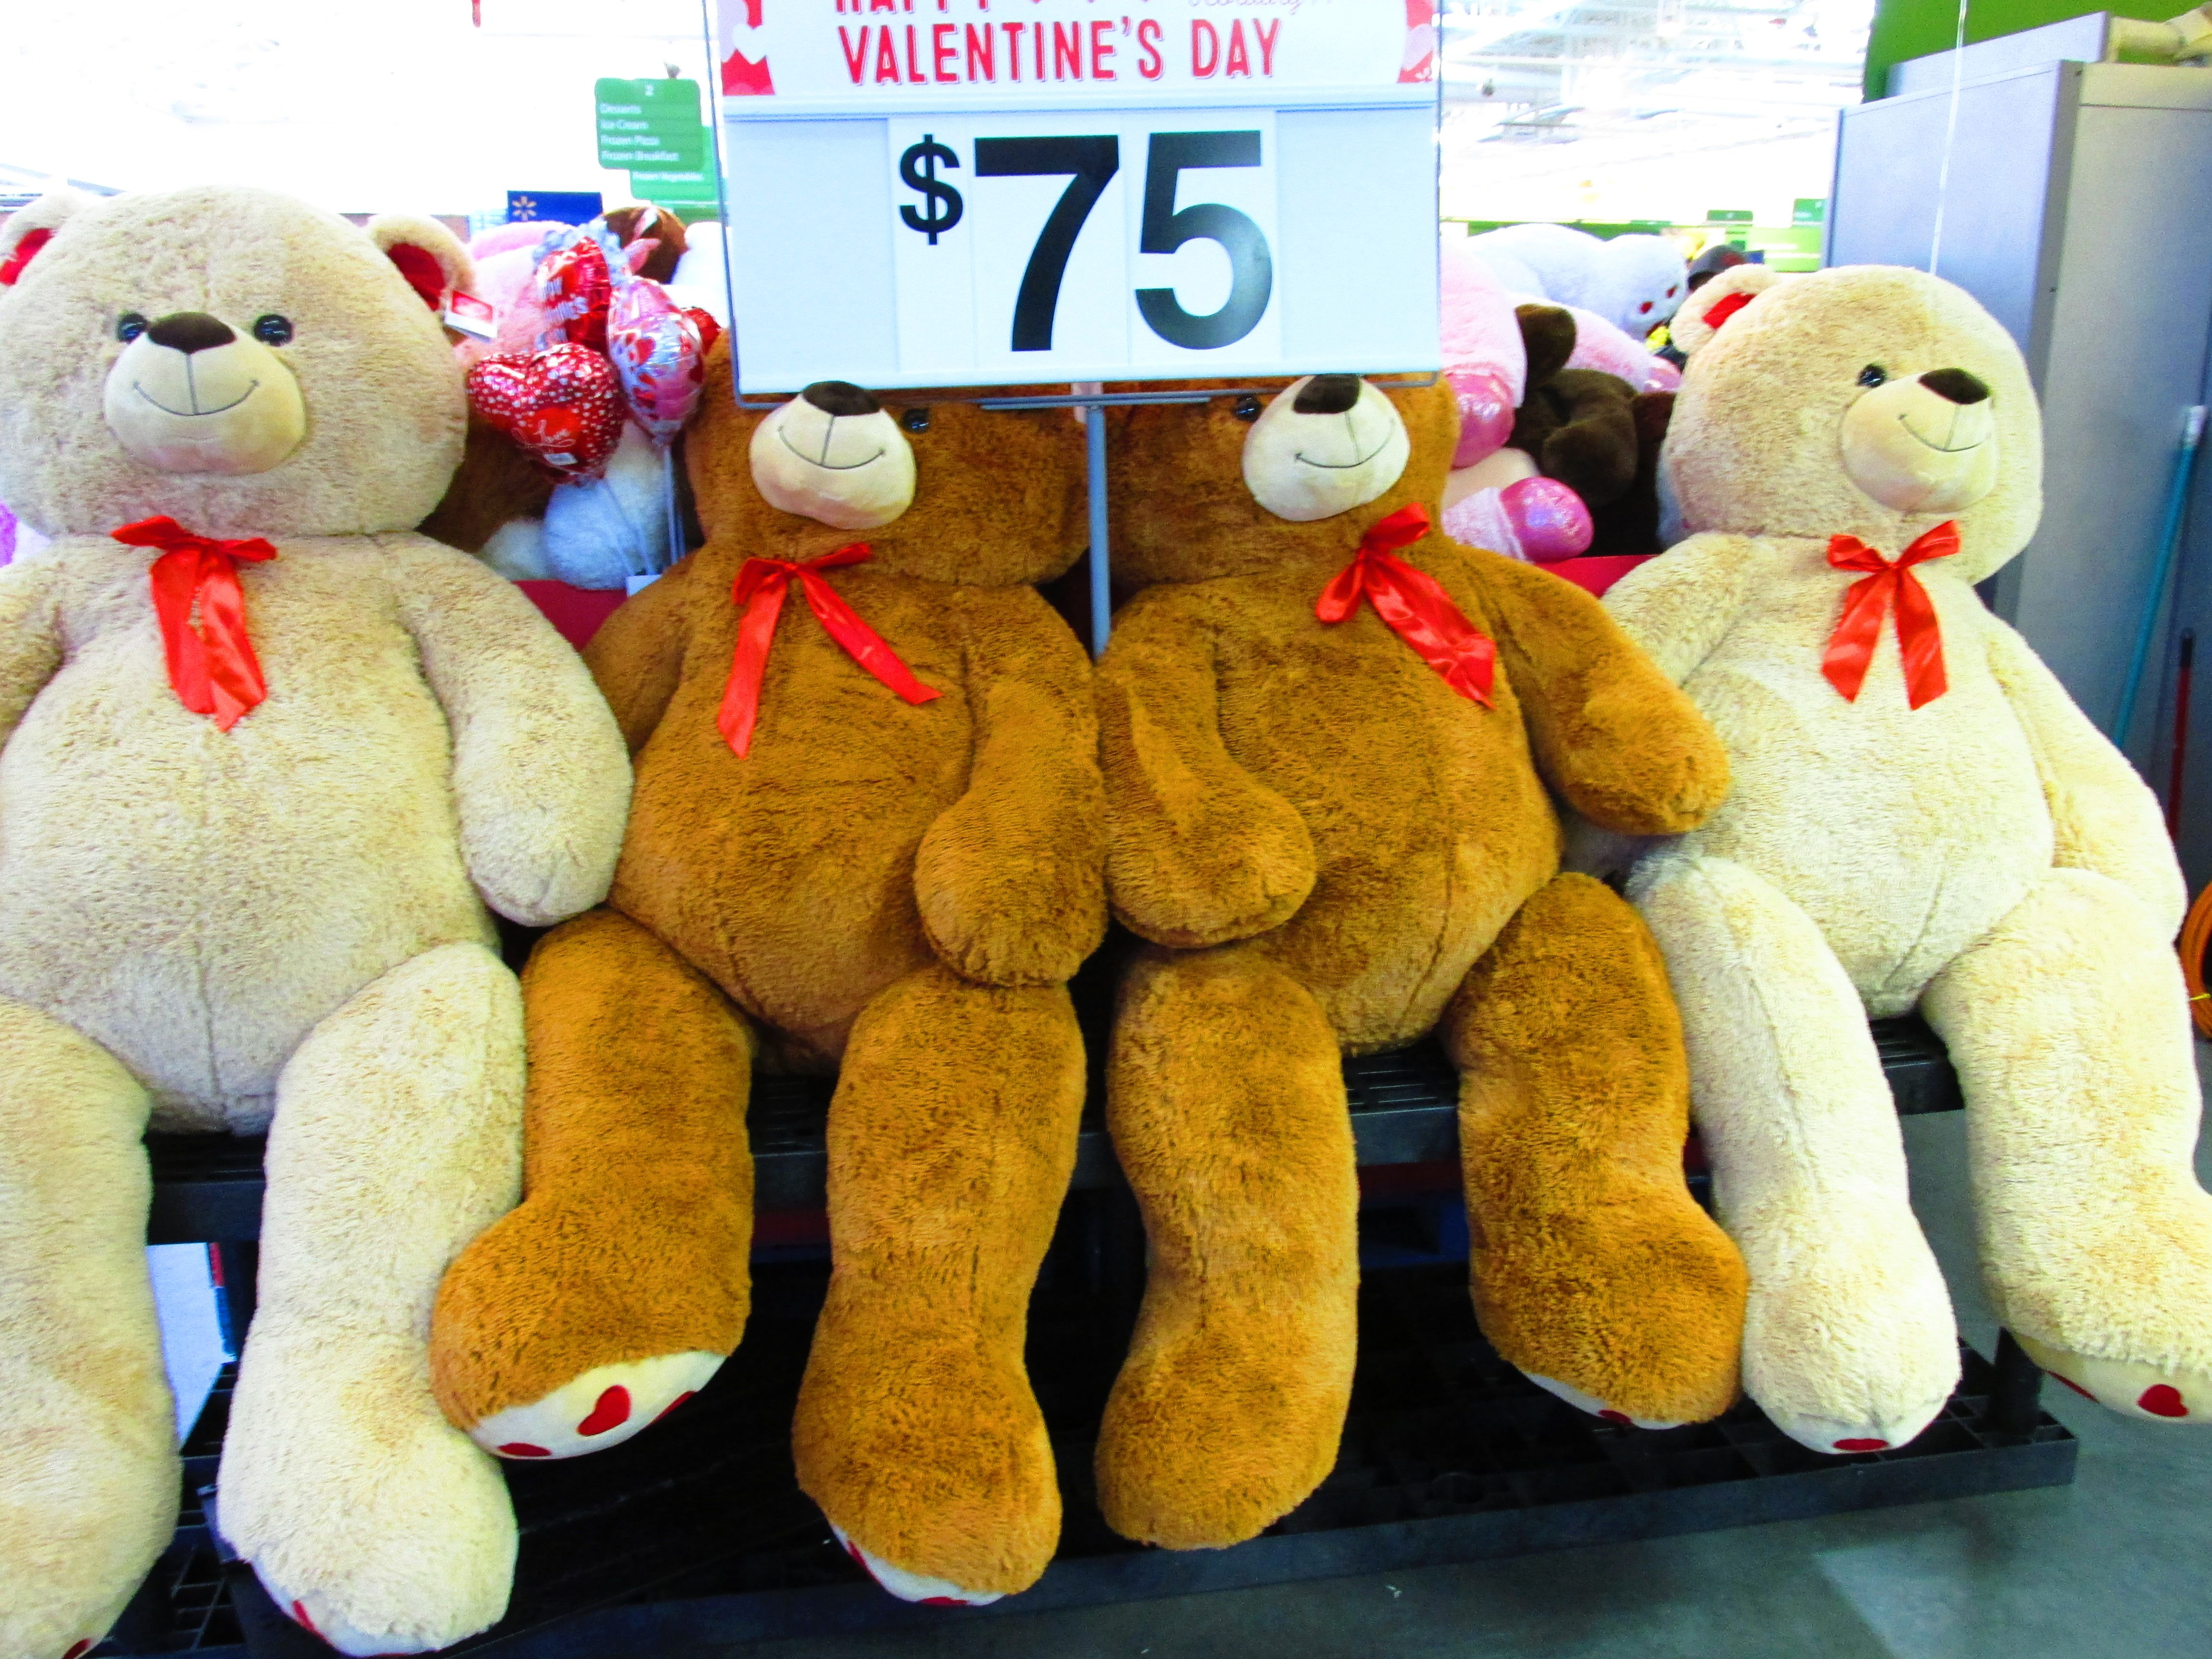 Very Large Bears For $75 Each At Walmart